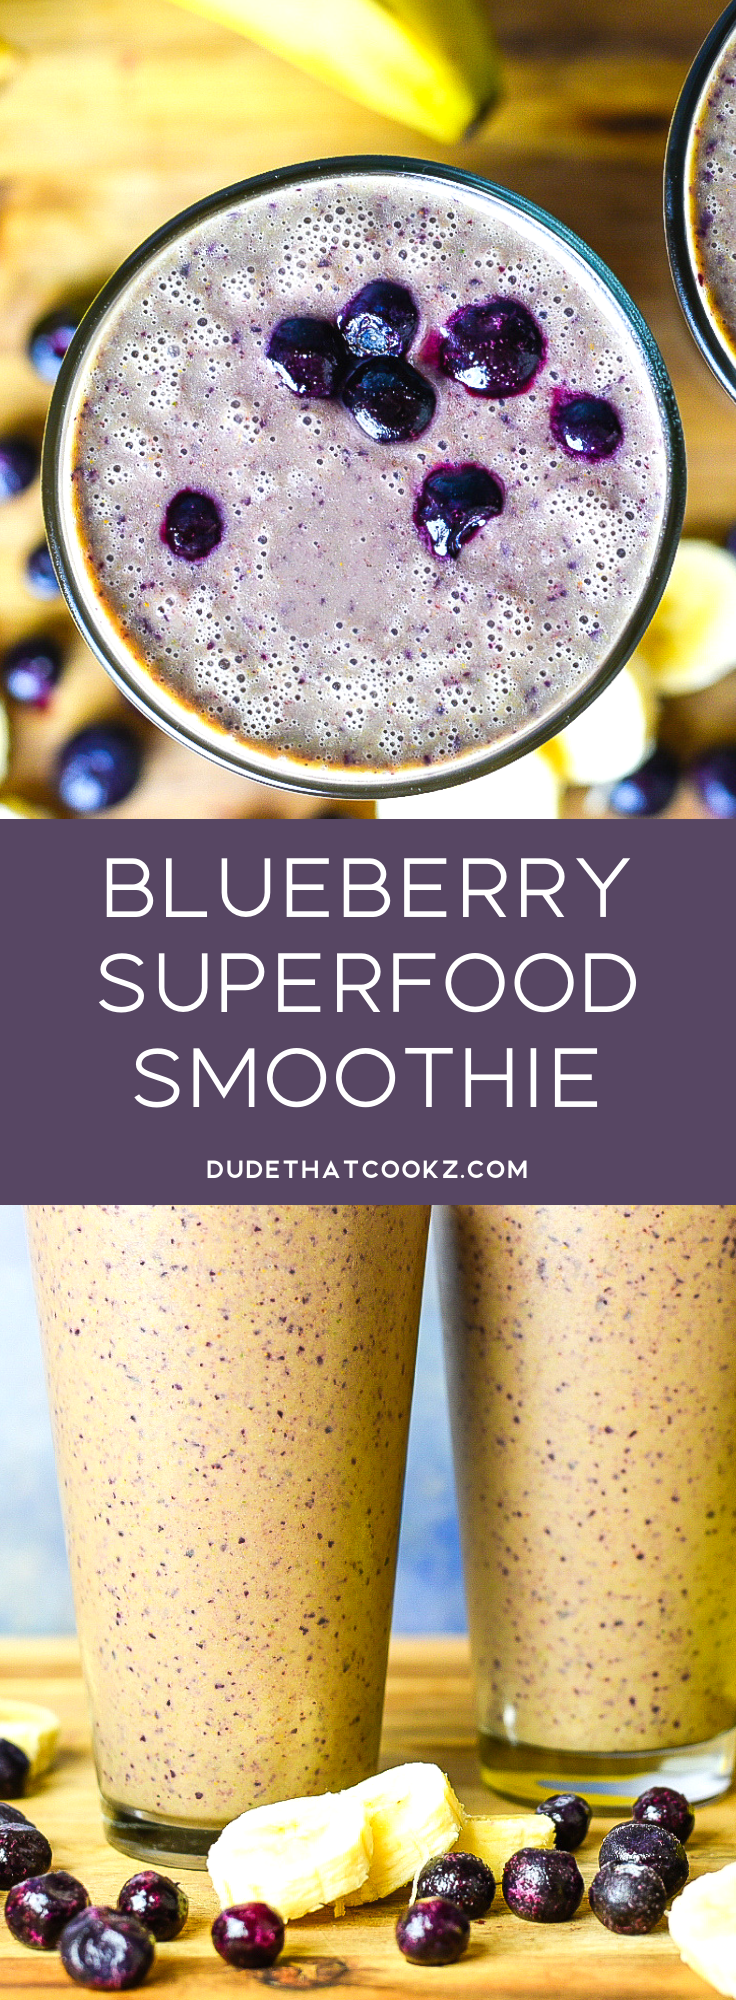 A go to for myself when I'm feeling like I need a nutritional boost is called the Blueberry Superfood Smoothie. This is a pretty simple combination of great tasting ingredients that will help you more than you realize. #smoothie #superfood #tumeric #ginger #bluberries #smoothierecipes #breakfastsmoothie #breakfast #blueberryrecipes #bluberries #superfoods #superfoodrecipes